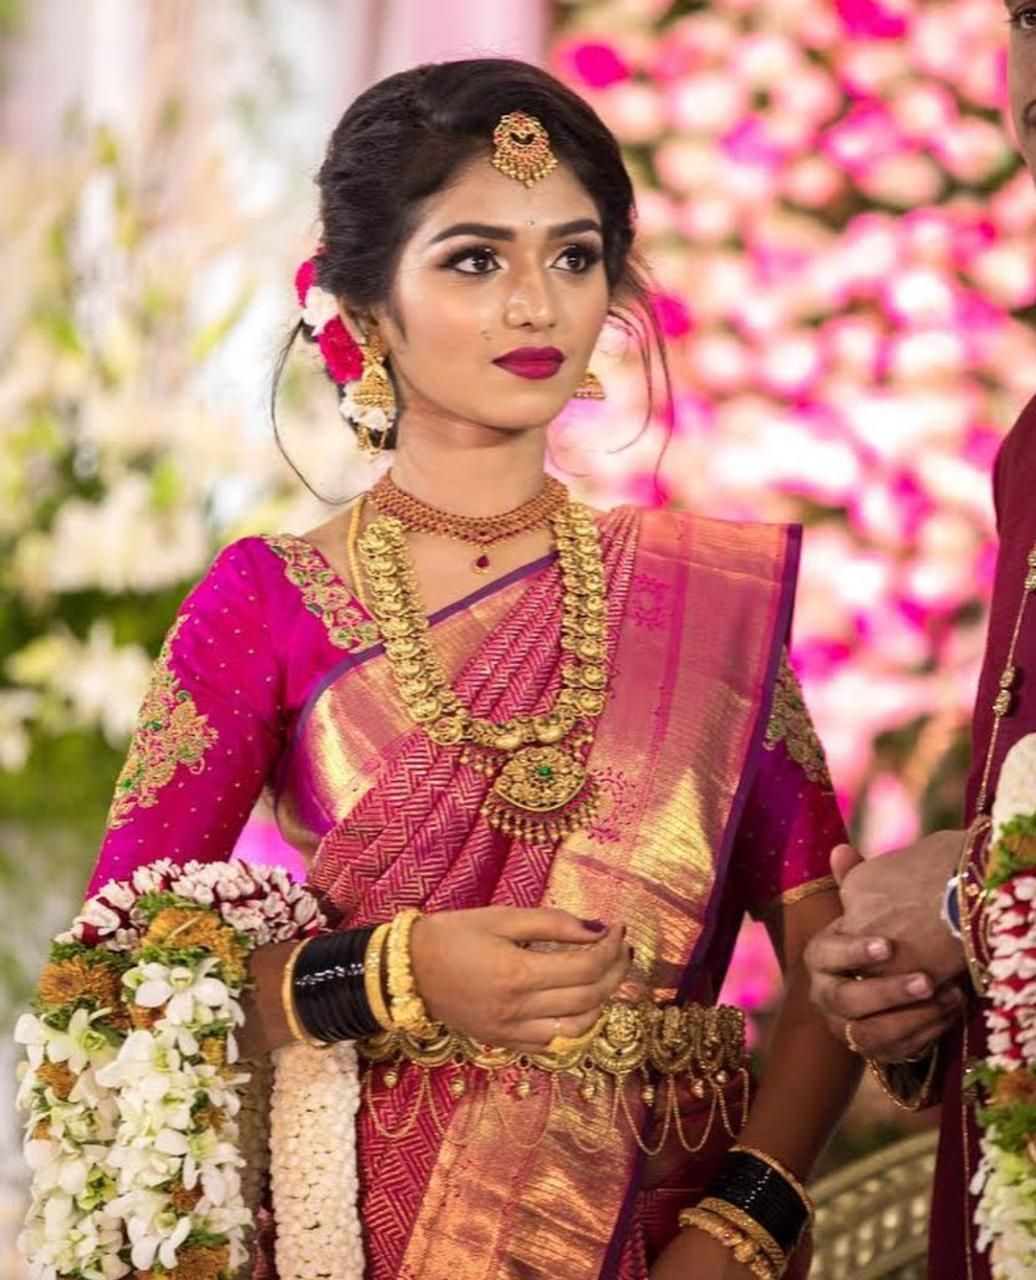 Southindianbride Thebride Wedding Weddingmoment Indianbride Indiangroom Southi Bridal Hairstyle Indian Wedding Indian Wedding Makeup Indian Bride Makeup